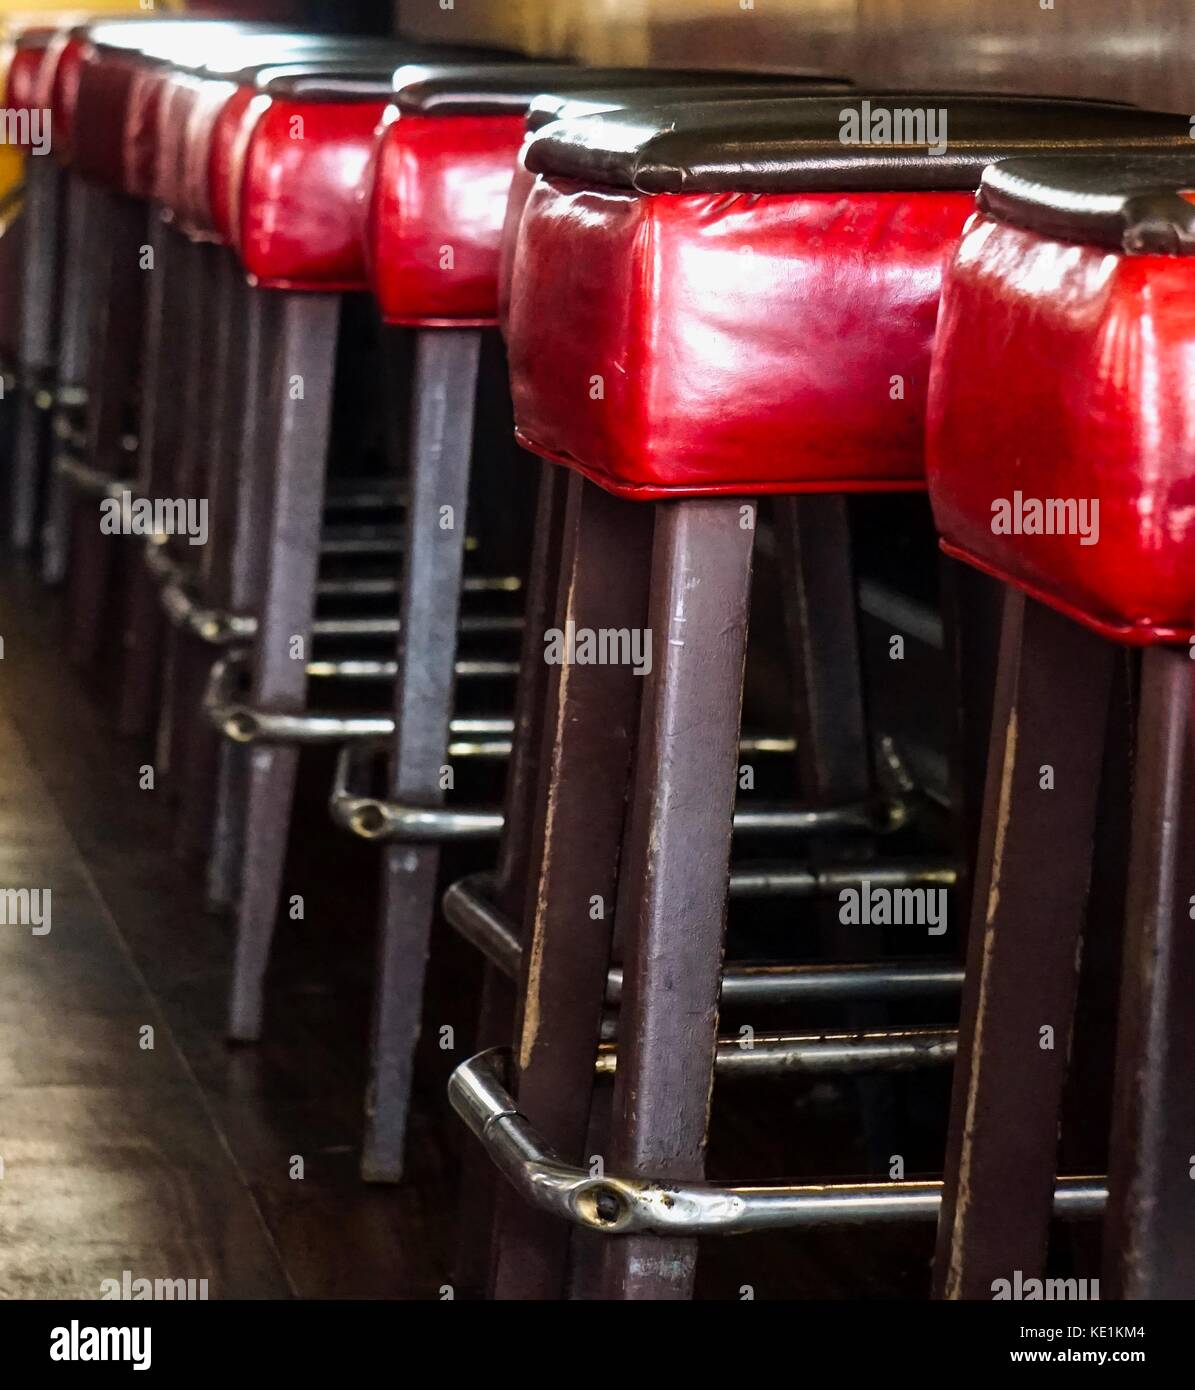 empty red leather barstools lined up in a row at counter - Stock Image